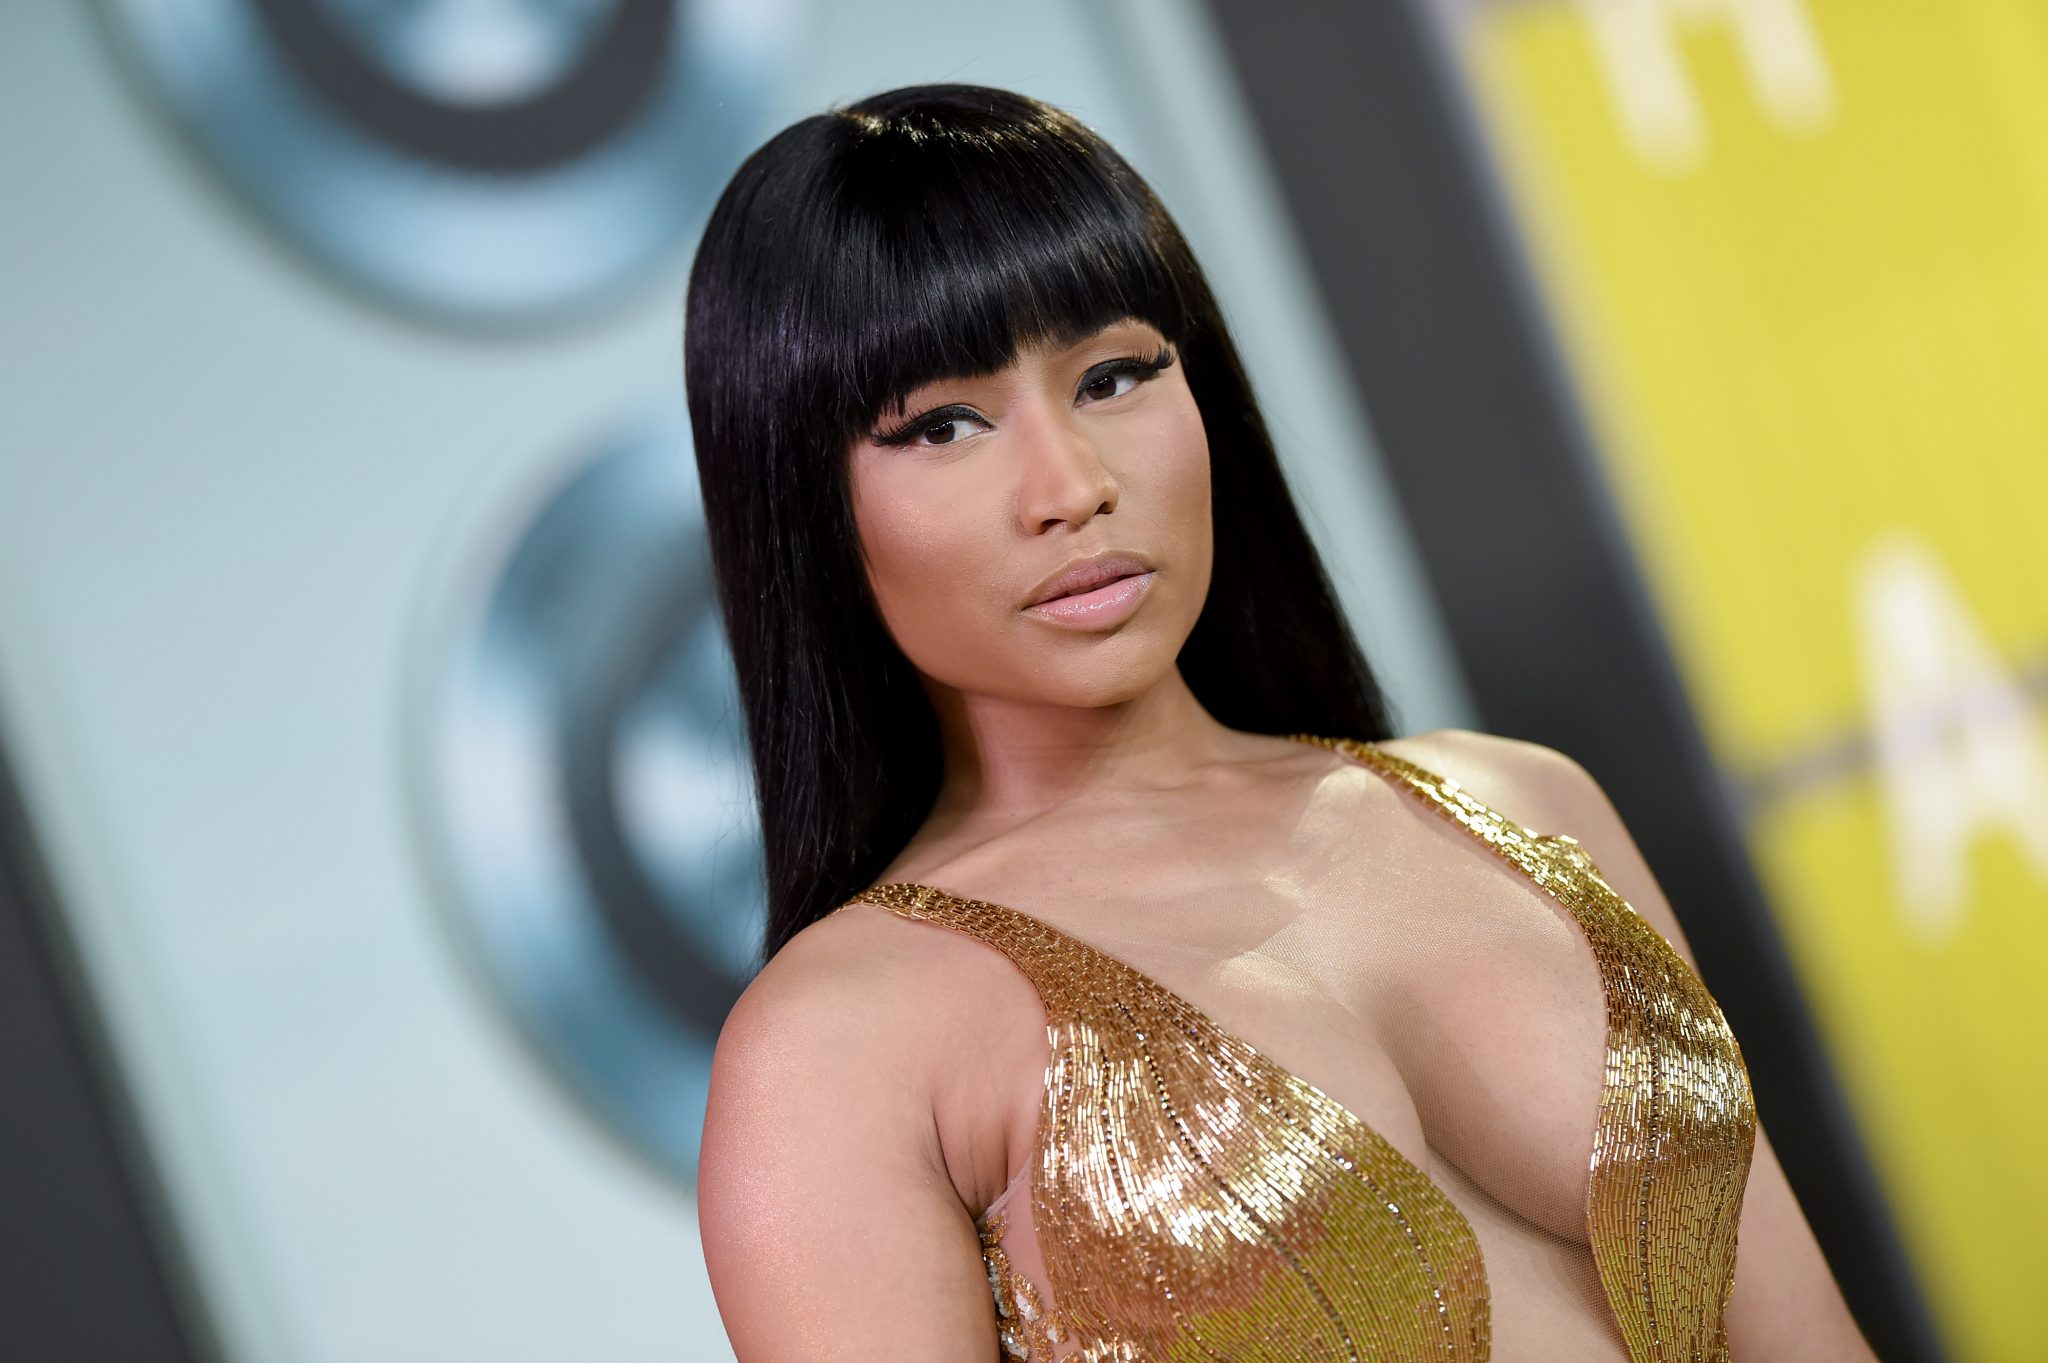 Nicki Minaj Wants Us To Stop Shaming Black Women Bodies